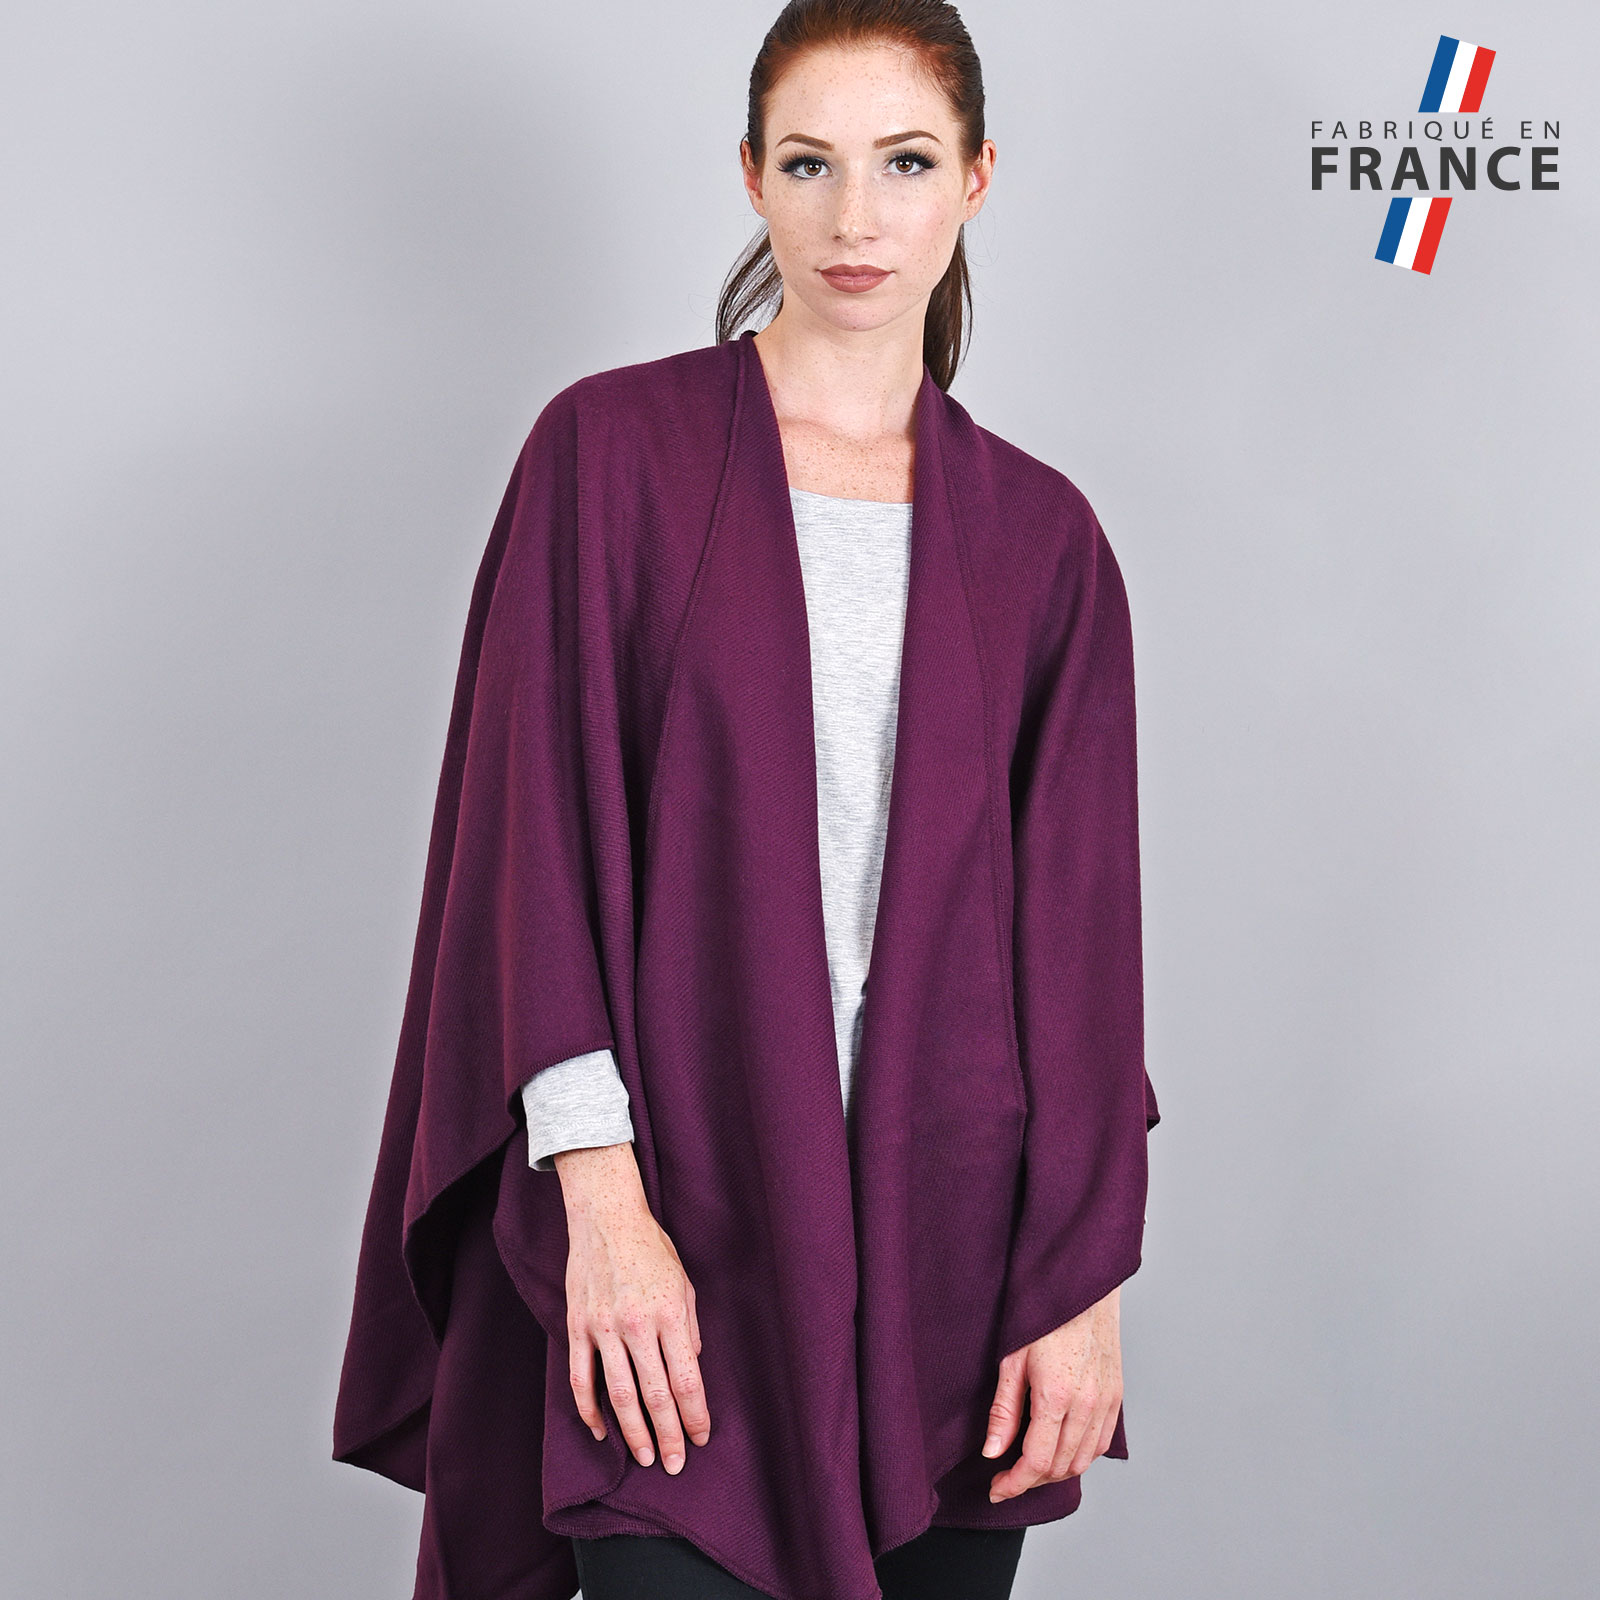 AT-03261-VF16-LB_FR-poncho-rond-fabrique-en-france-violine